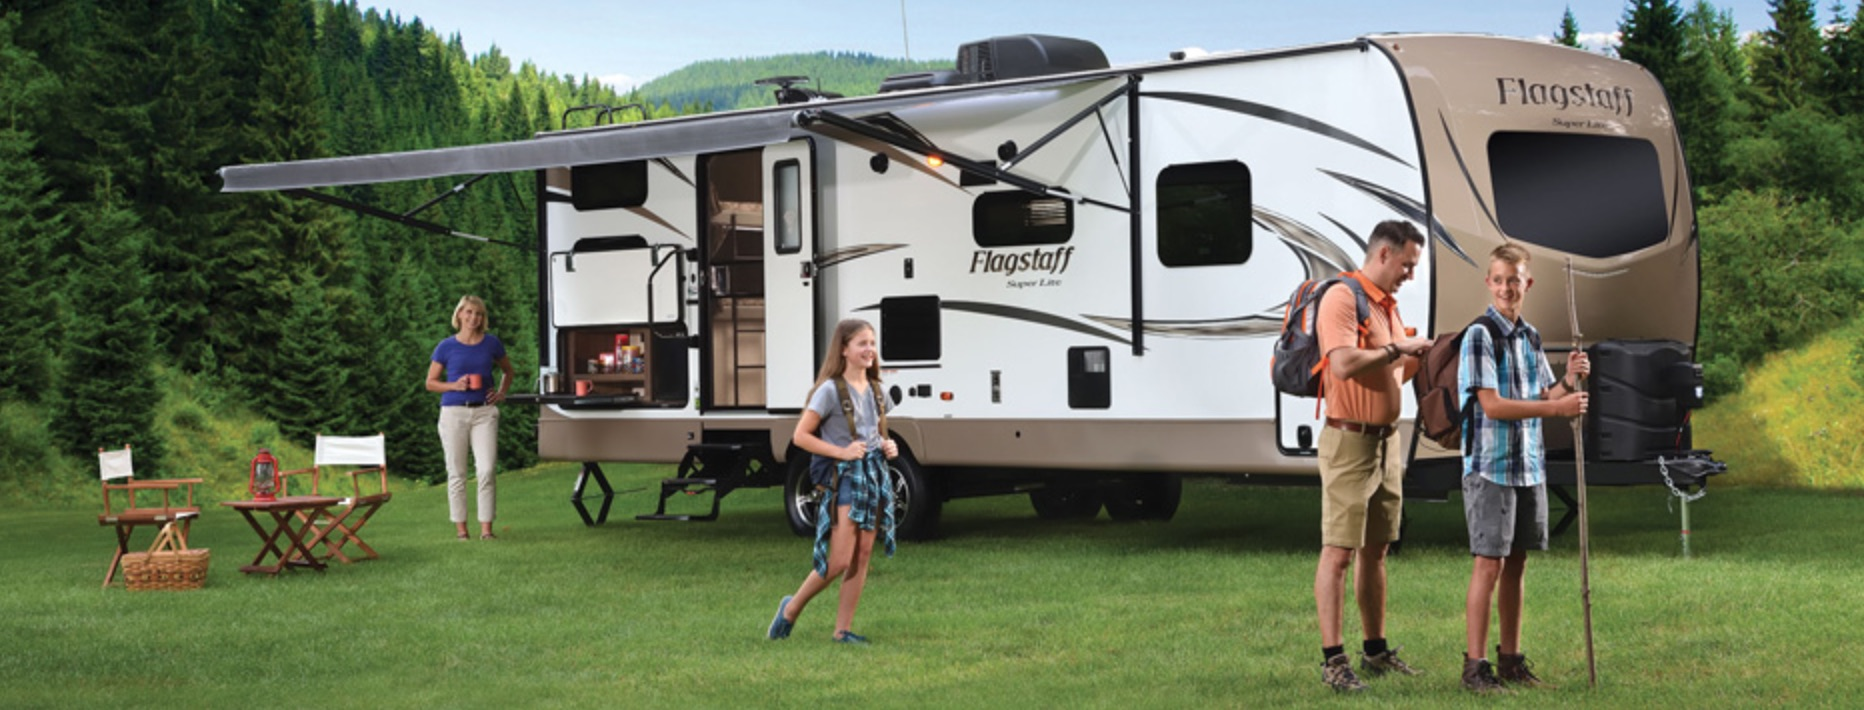 Flagstaff Super Lite Travel Trailer